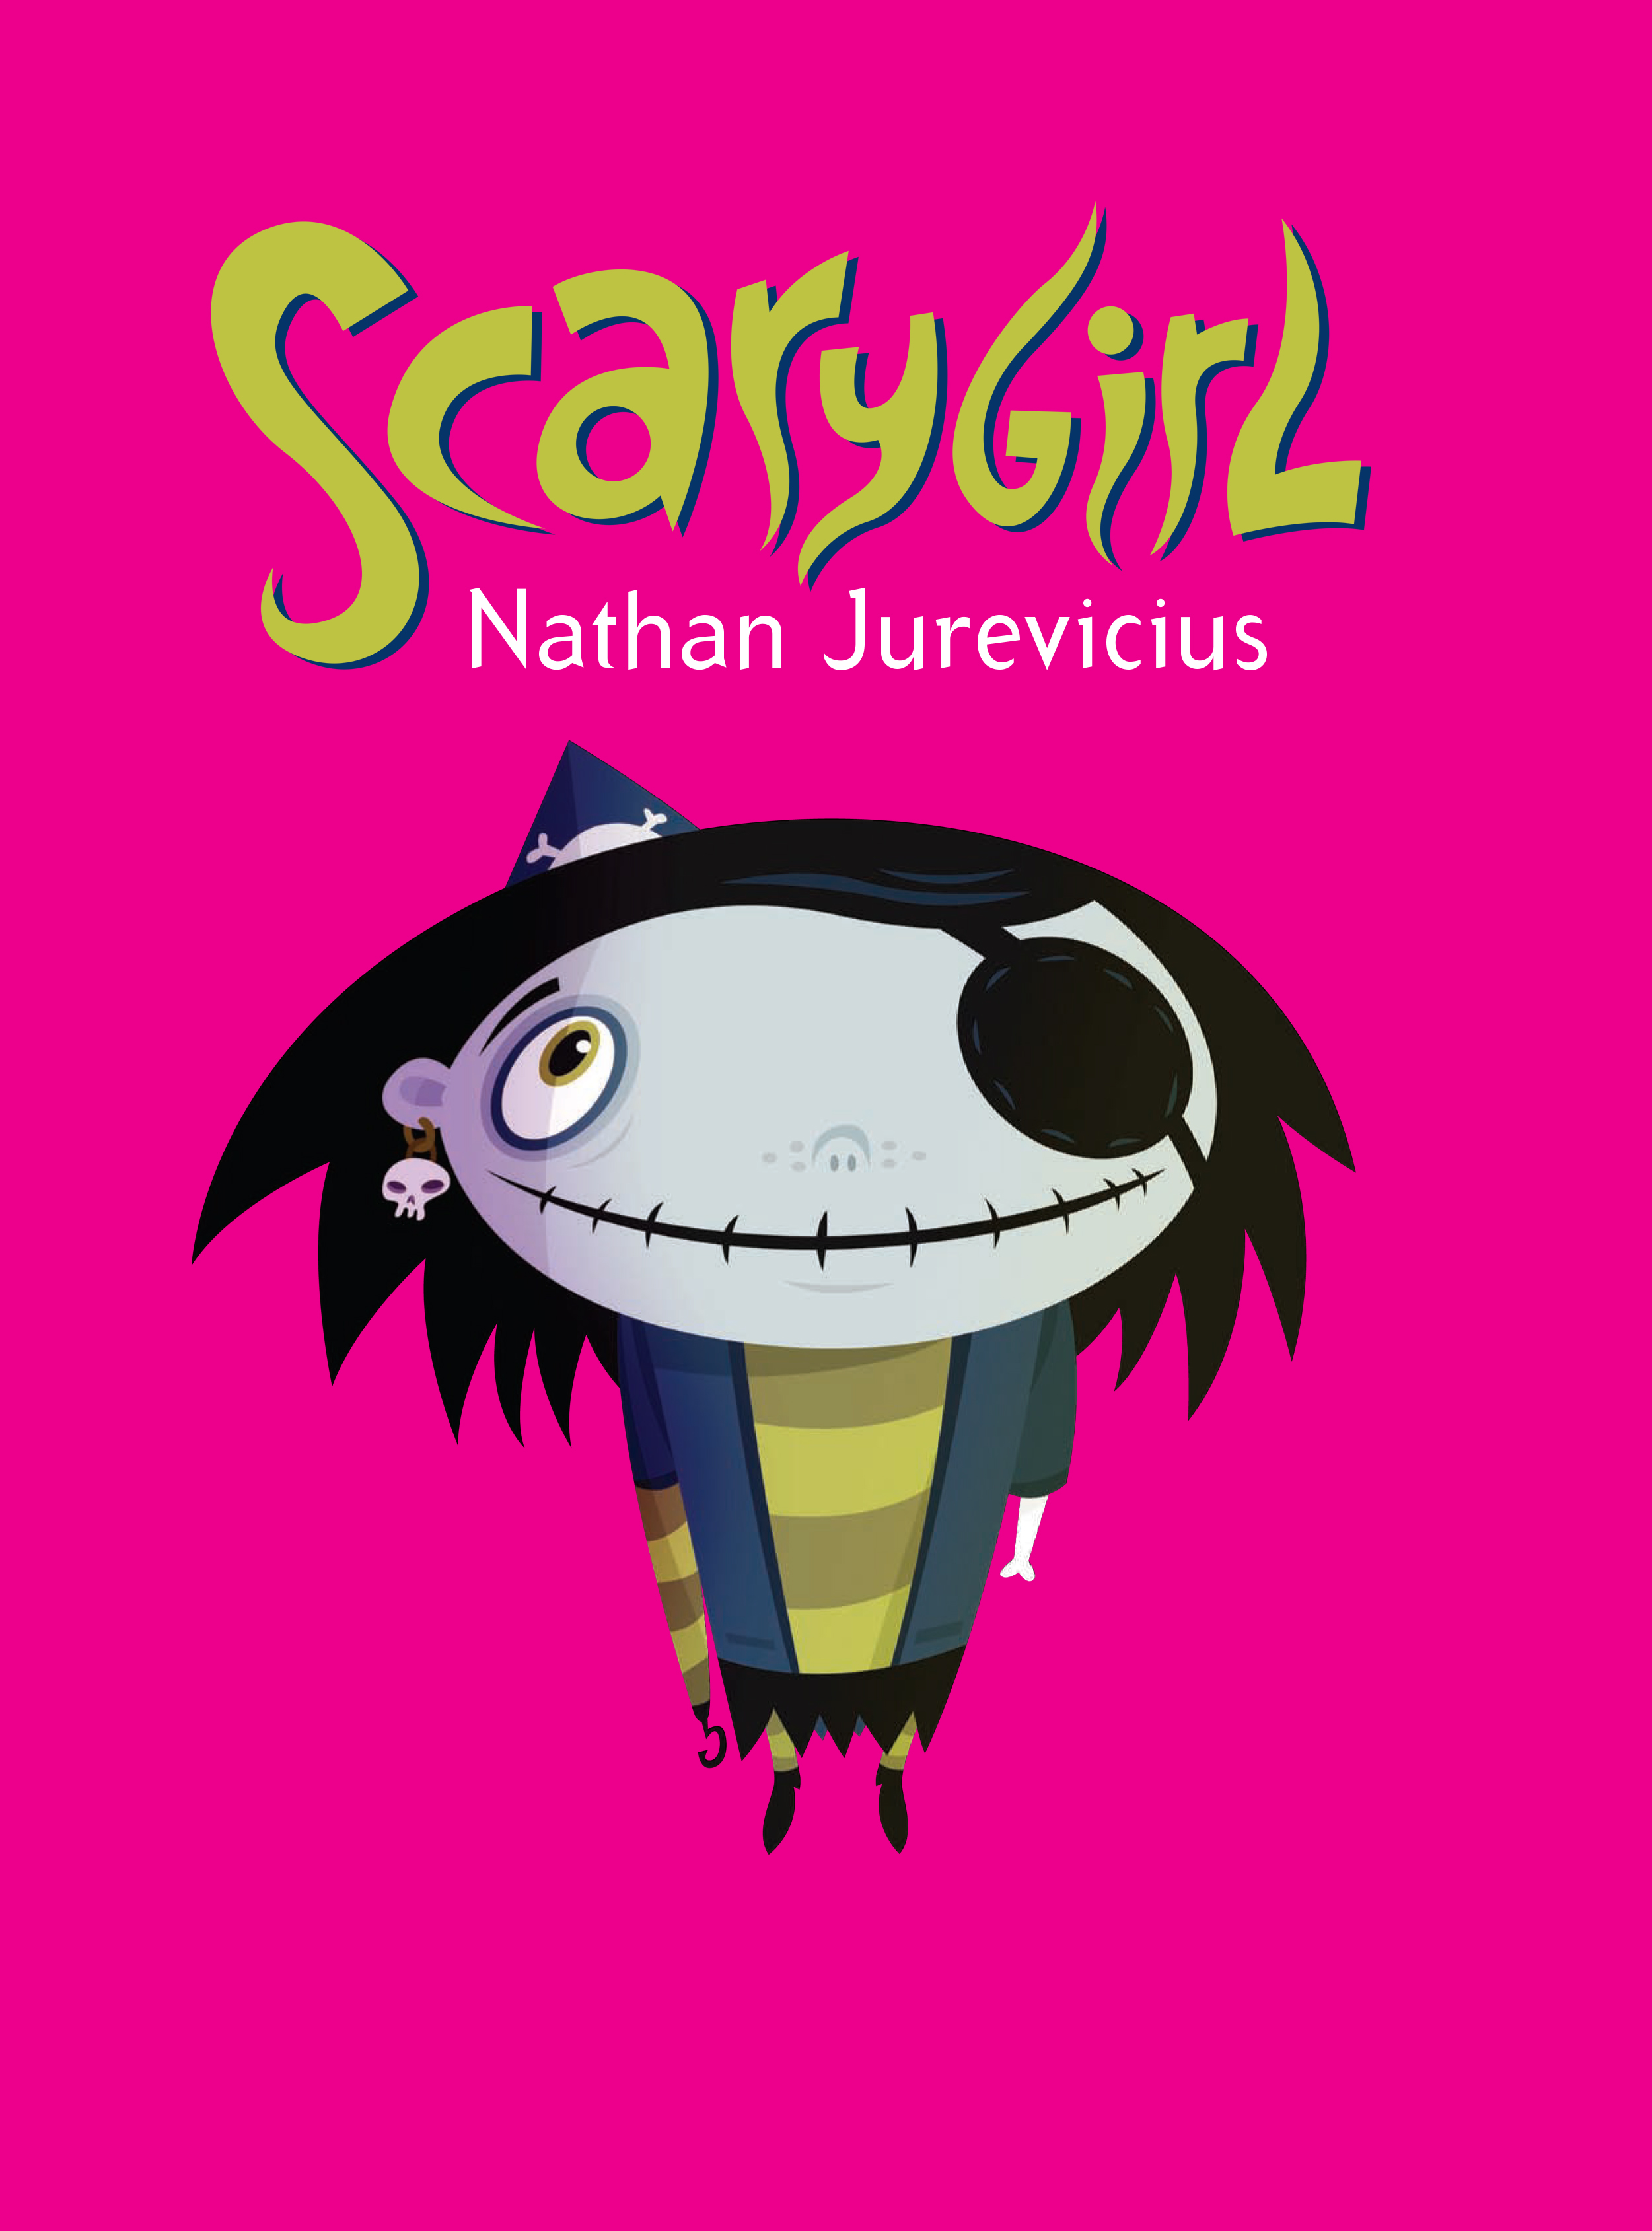 Scarygirl Book Cover 2